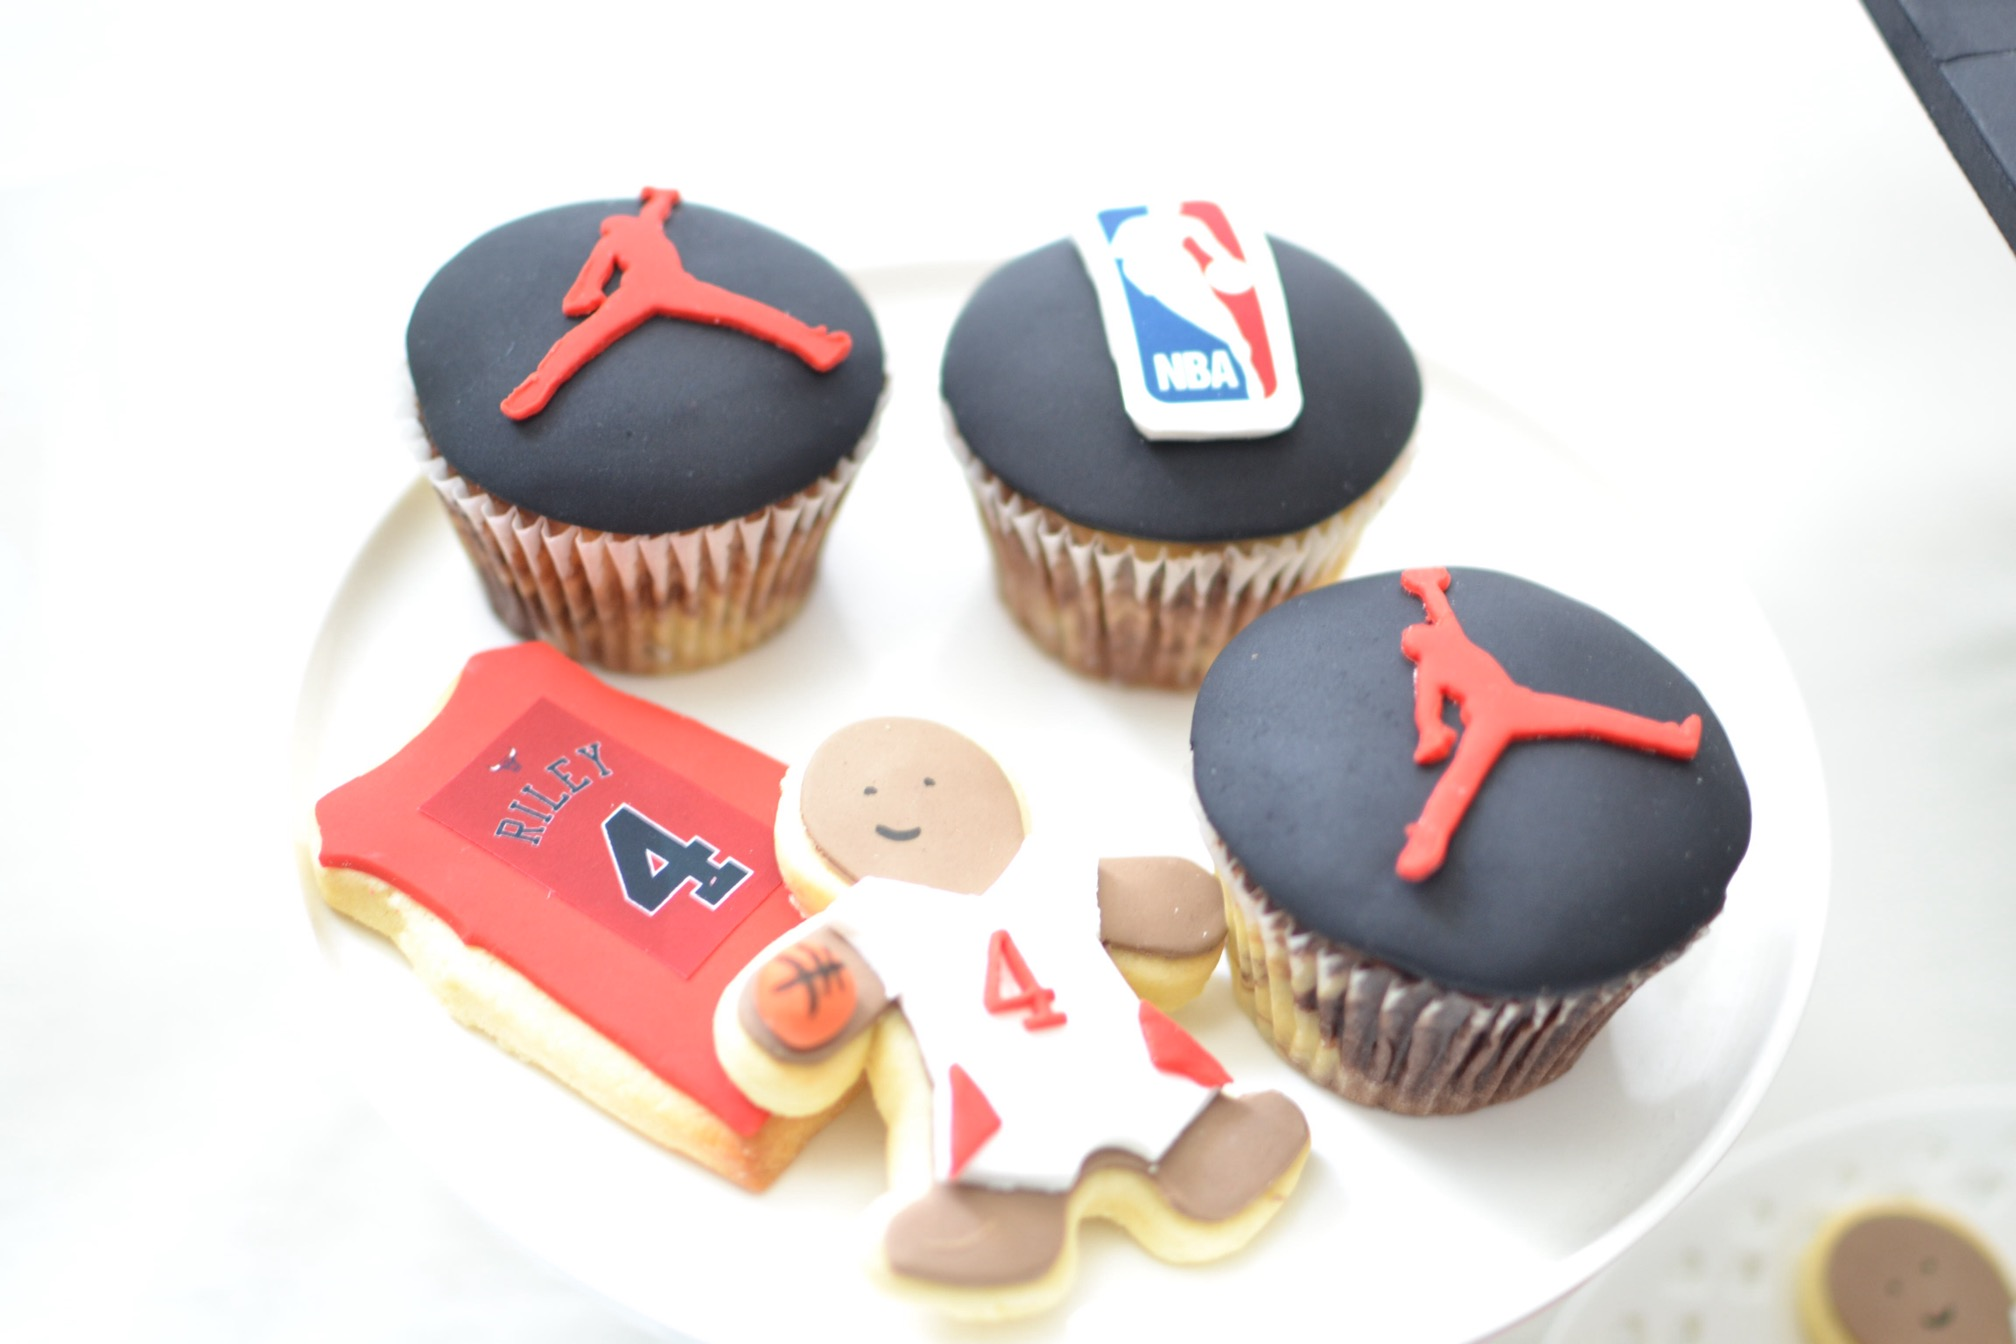 Basketball cupcakes and Cookies